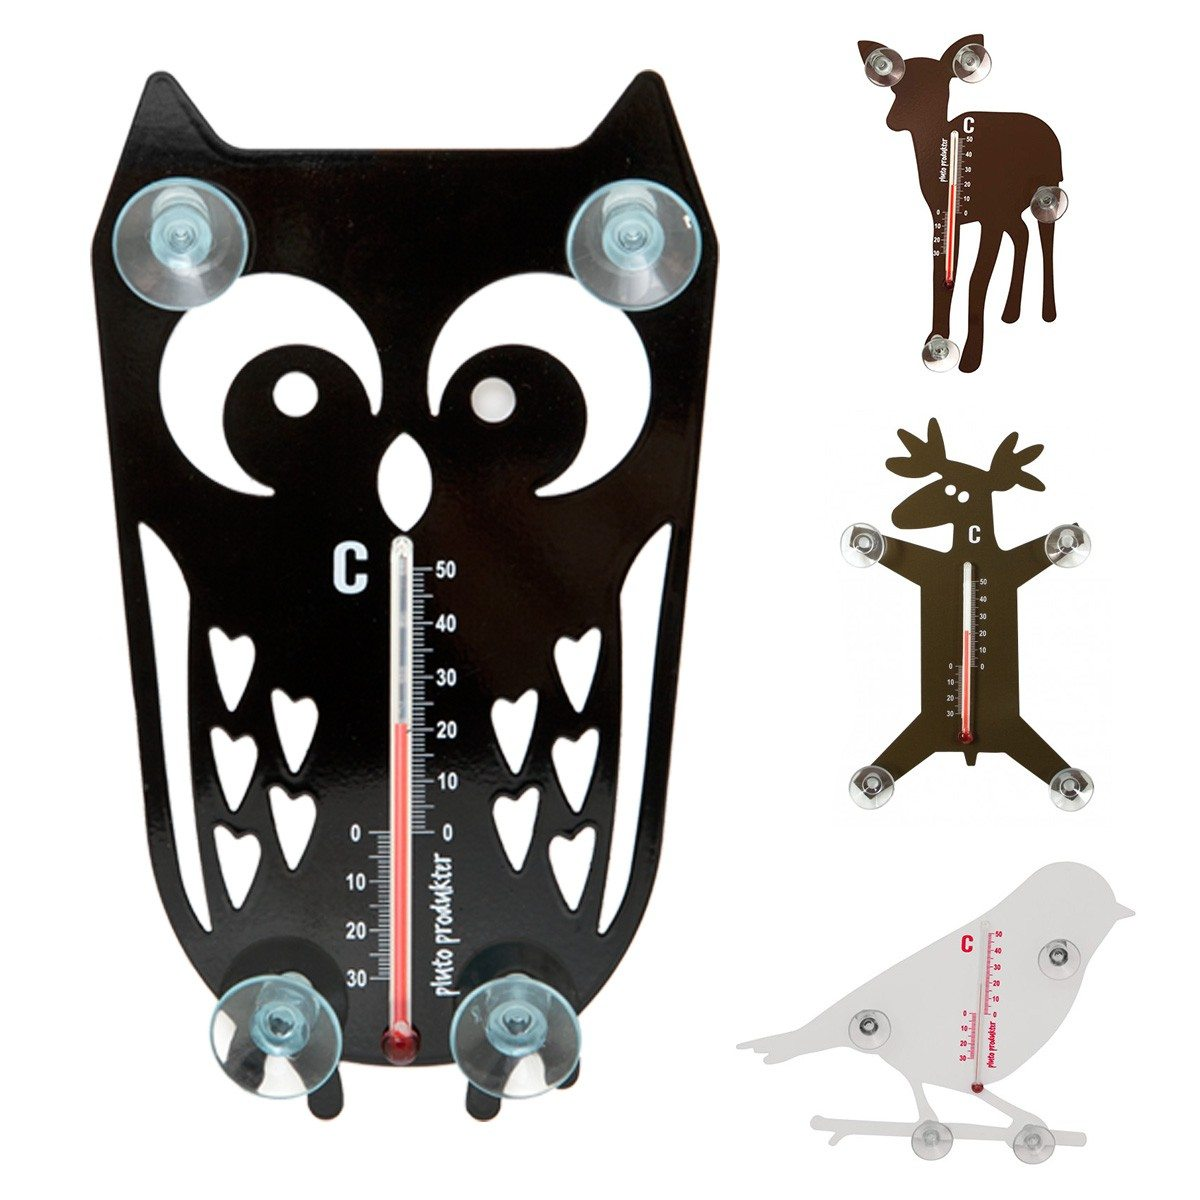 Beestachtige thermometer